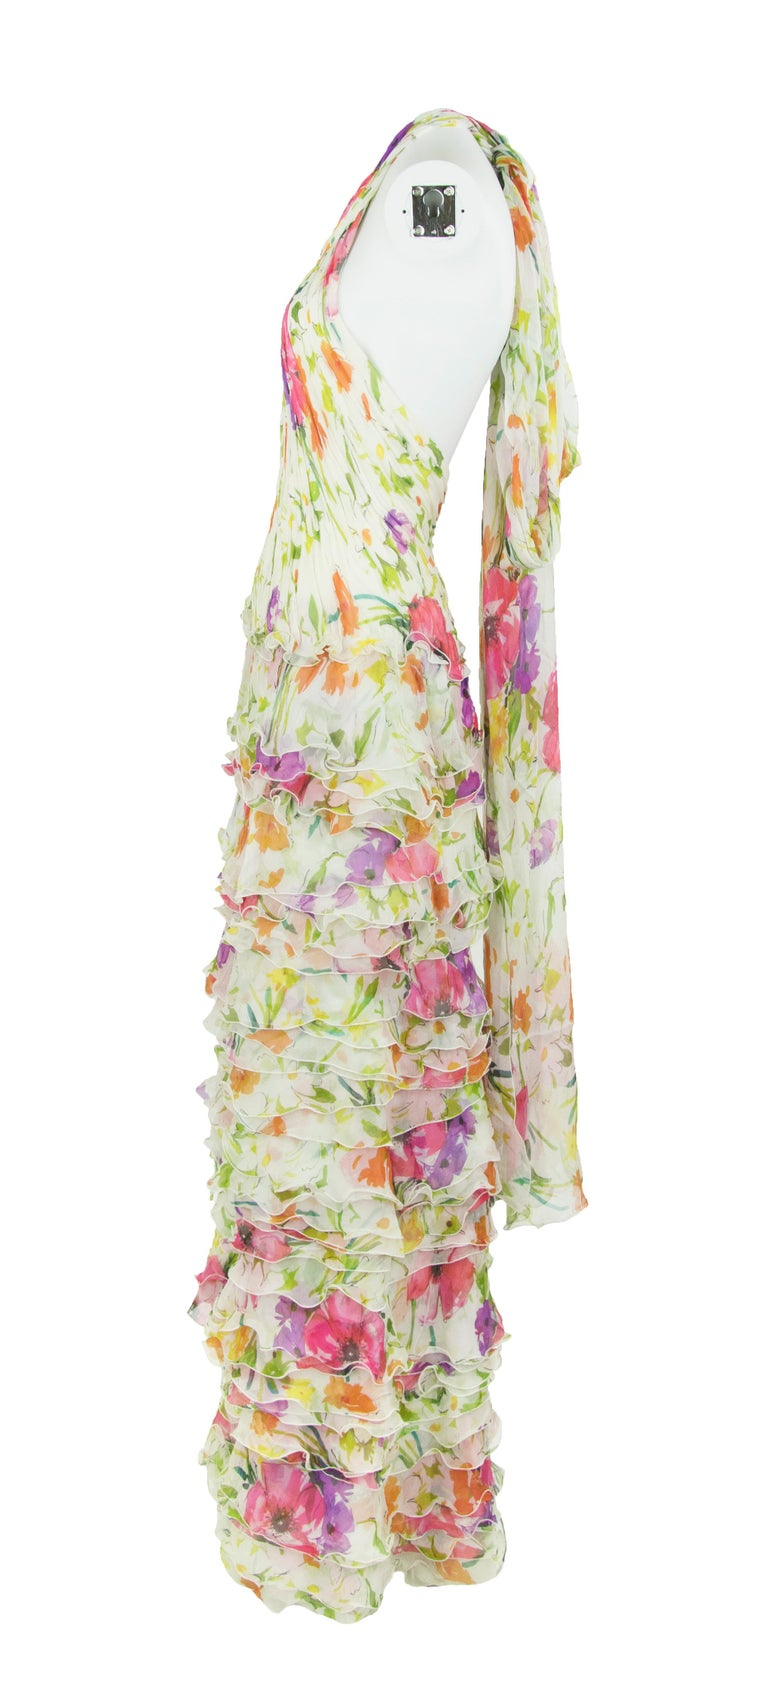 Products Ralph Lauren Collection White Floral Chiffon Gown - Size US 2 In Excellent Condition For Sale In Newport, RI